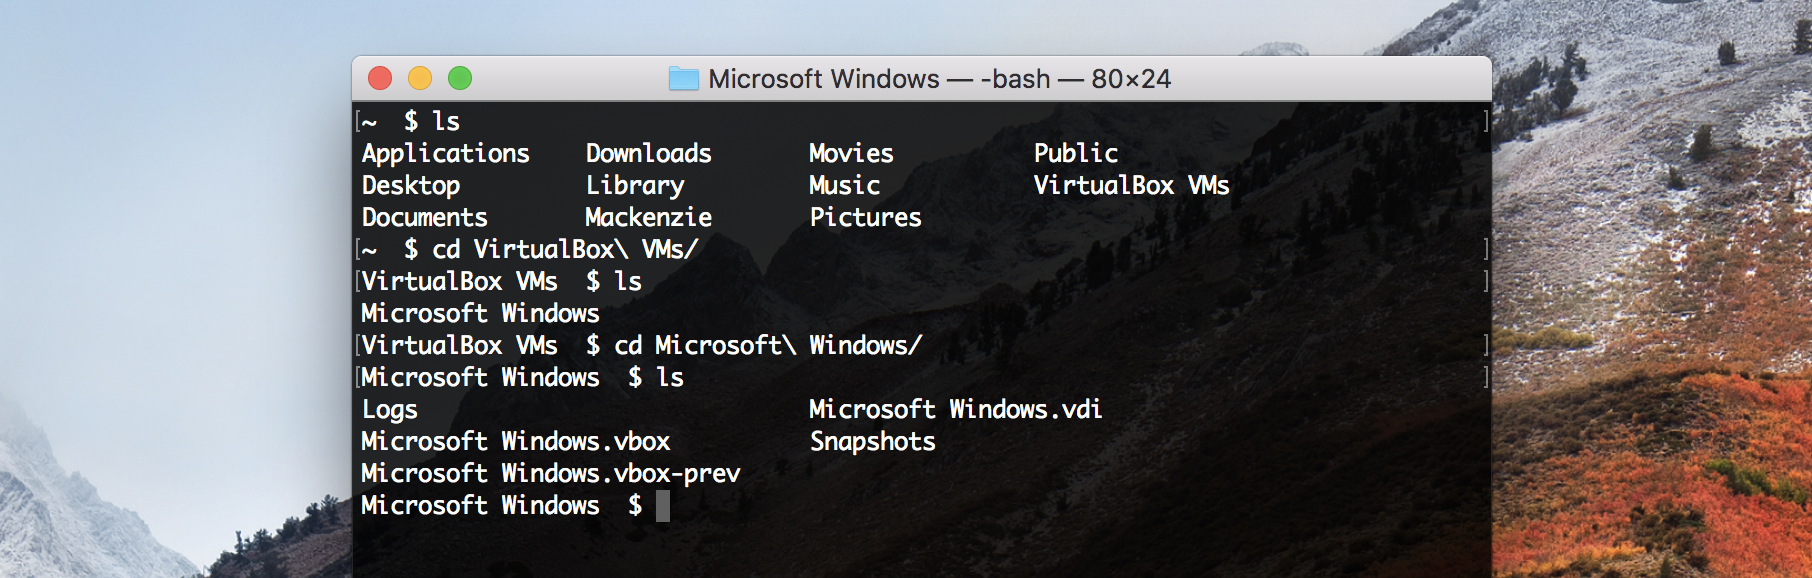 Increasing Storage Space for a Windows VirtualBox VM on Mac OS X